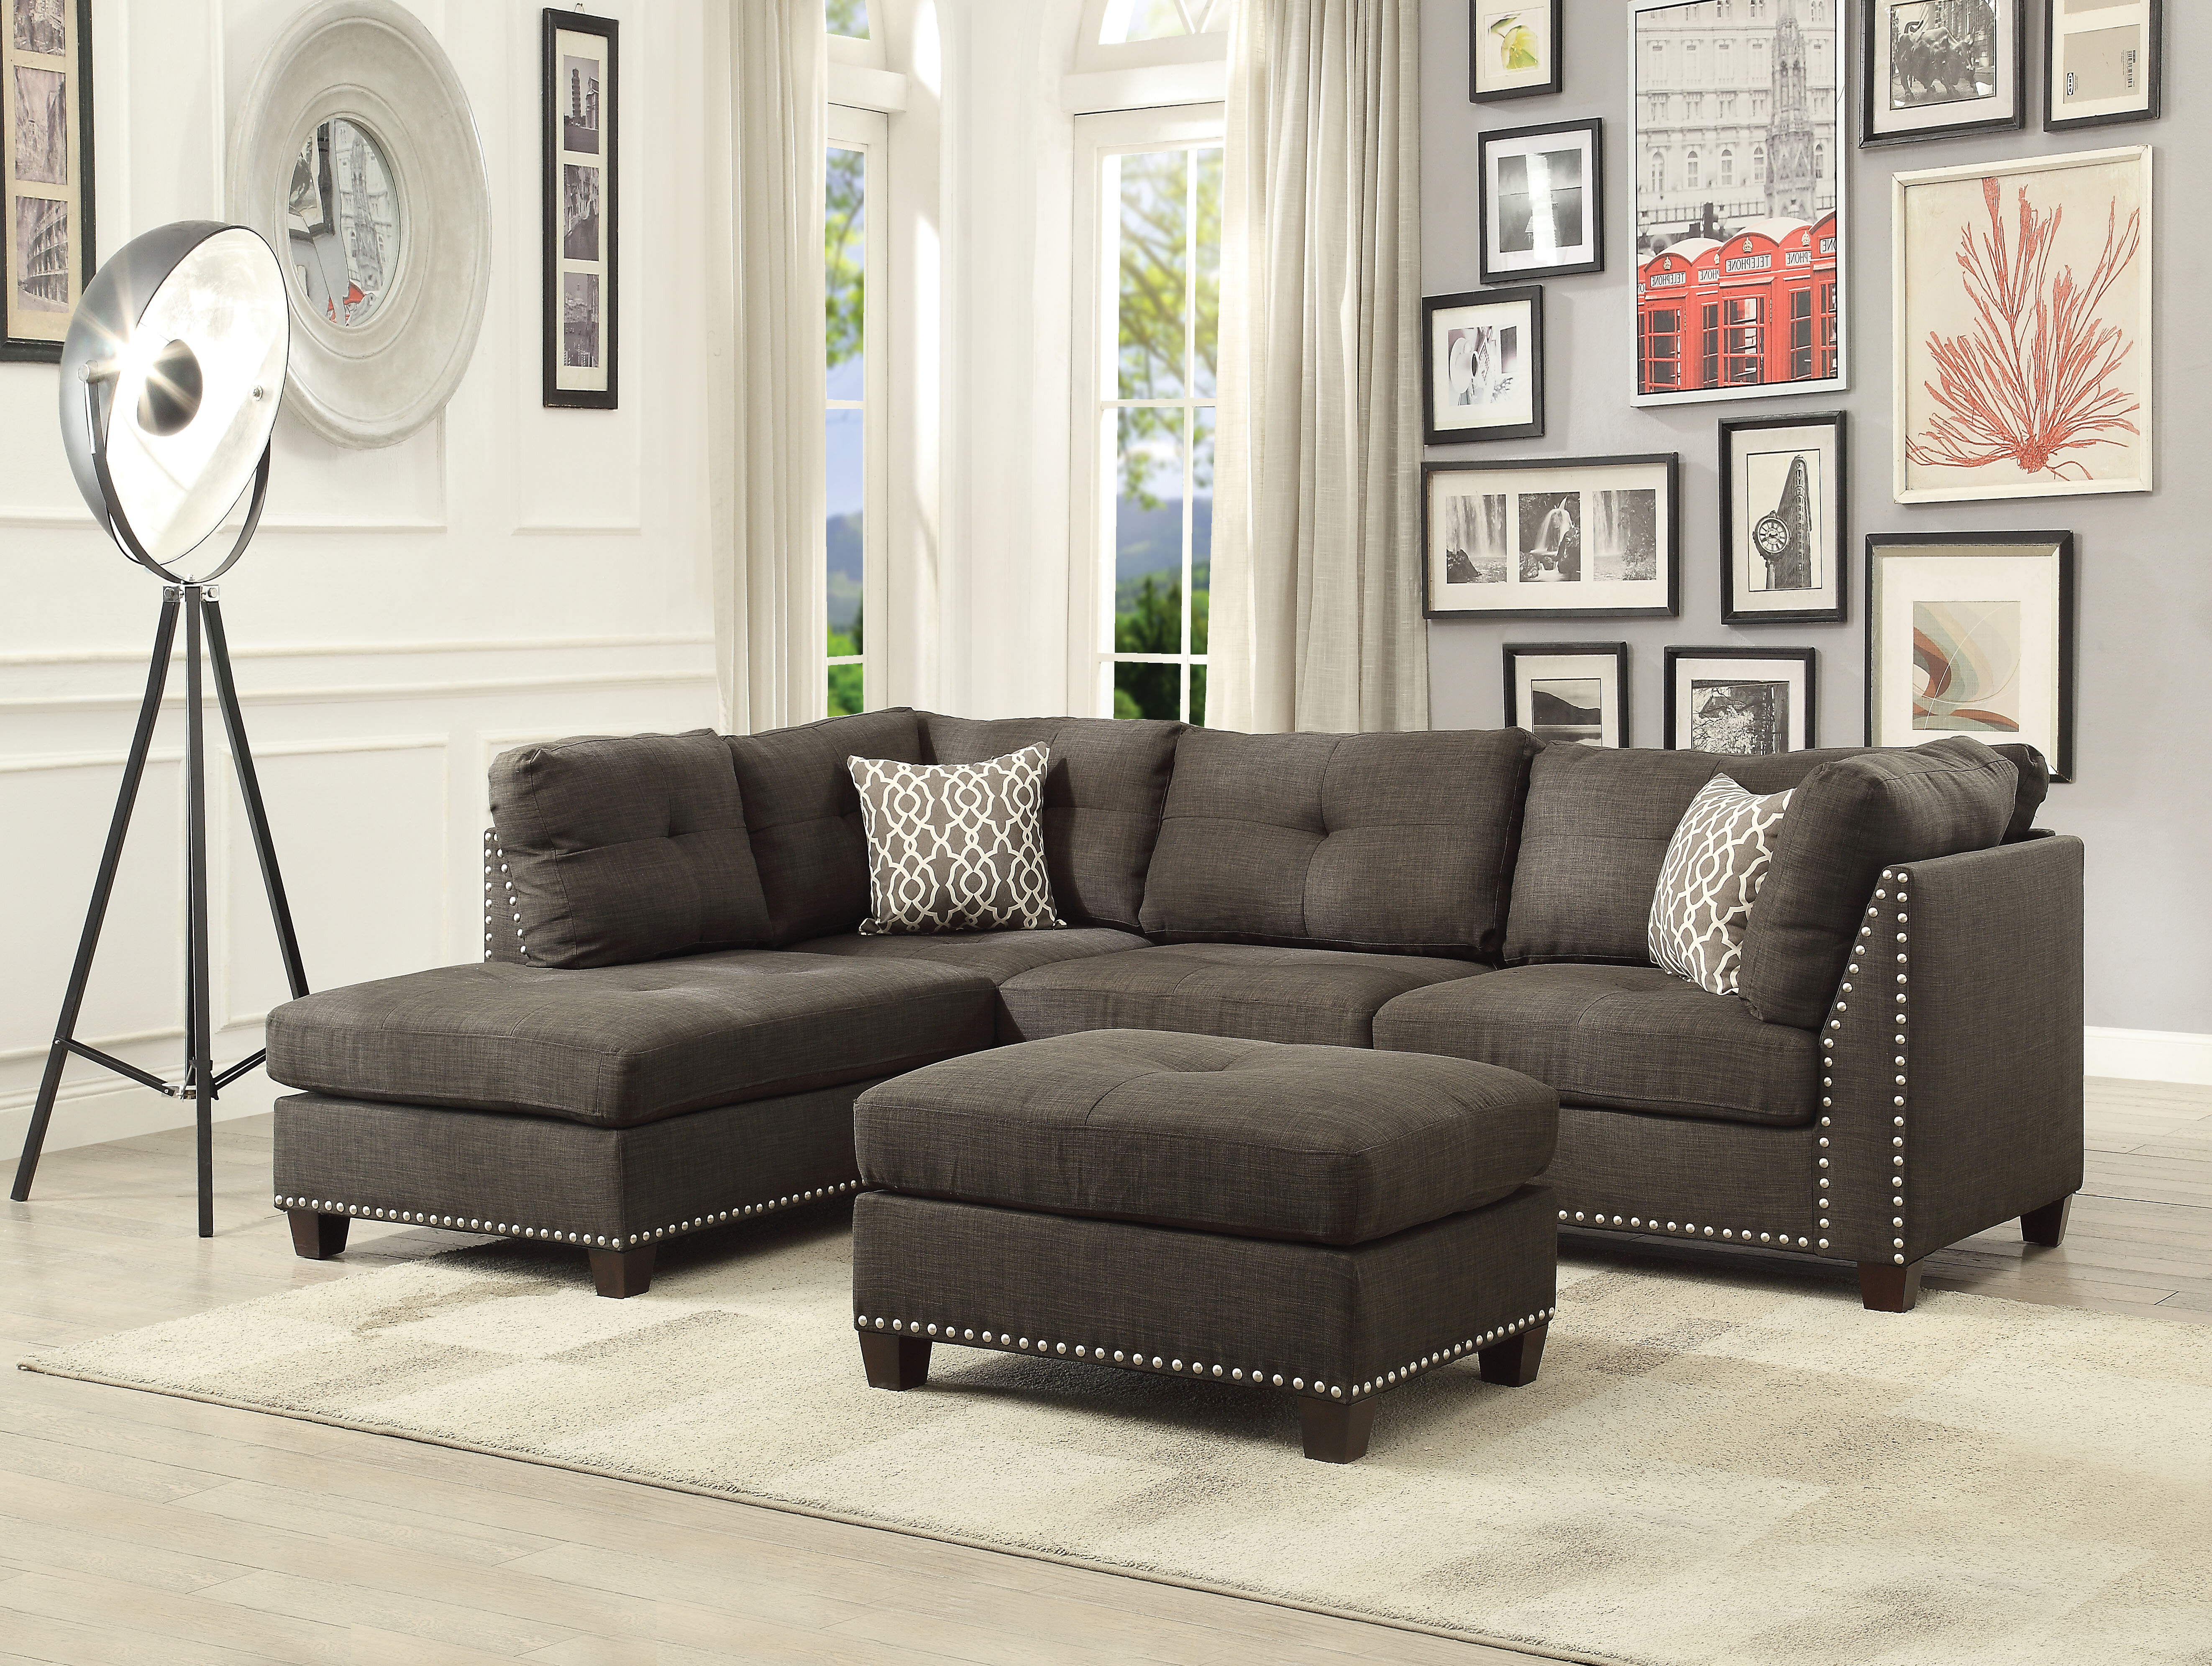 Alcott Hill Draco Sectional Sofa With